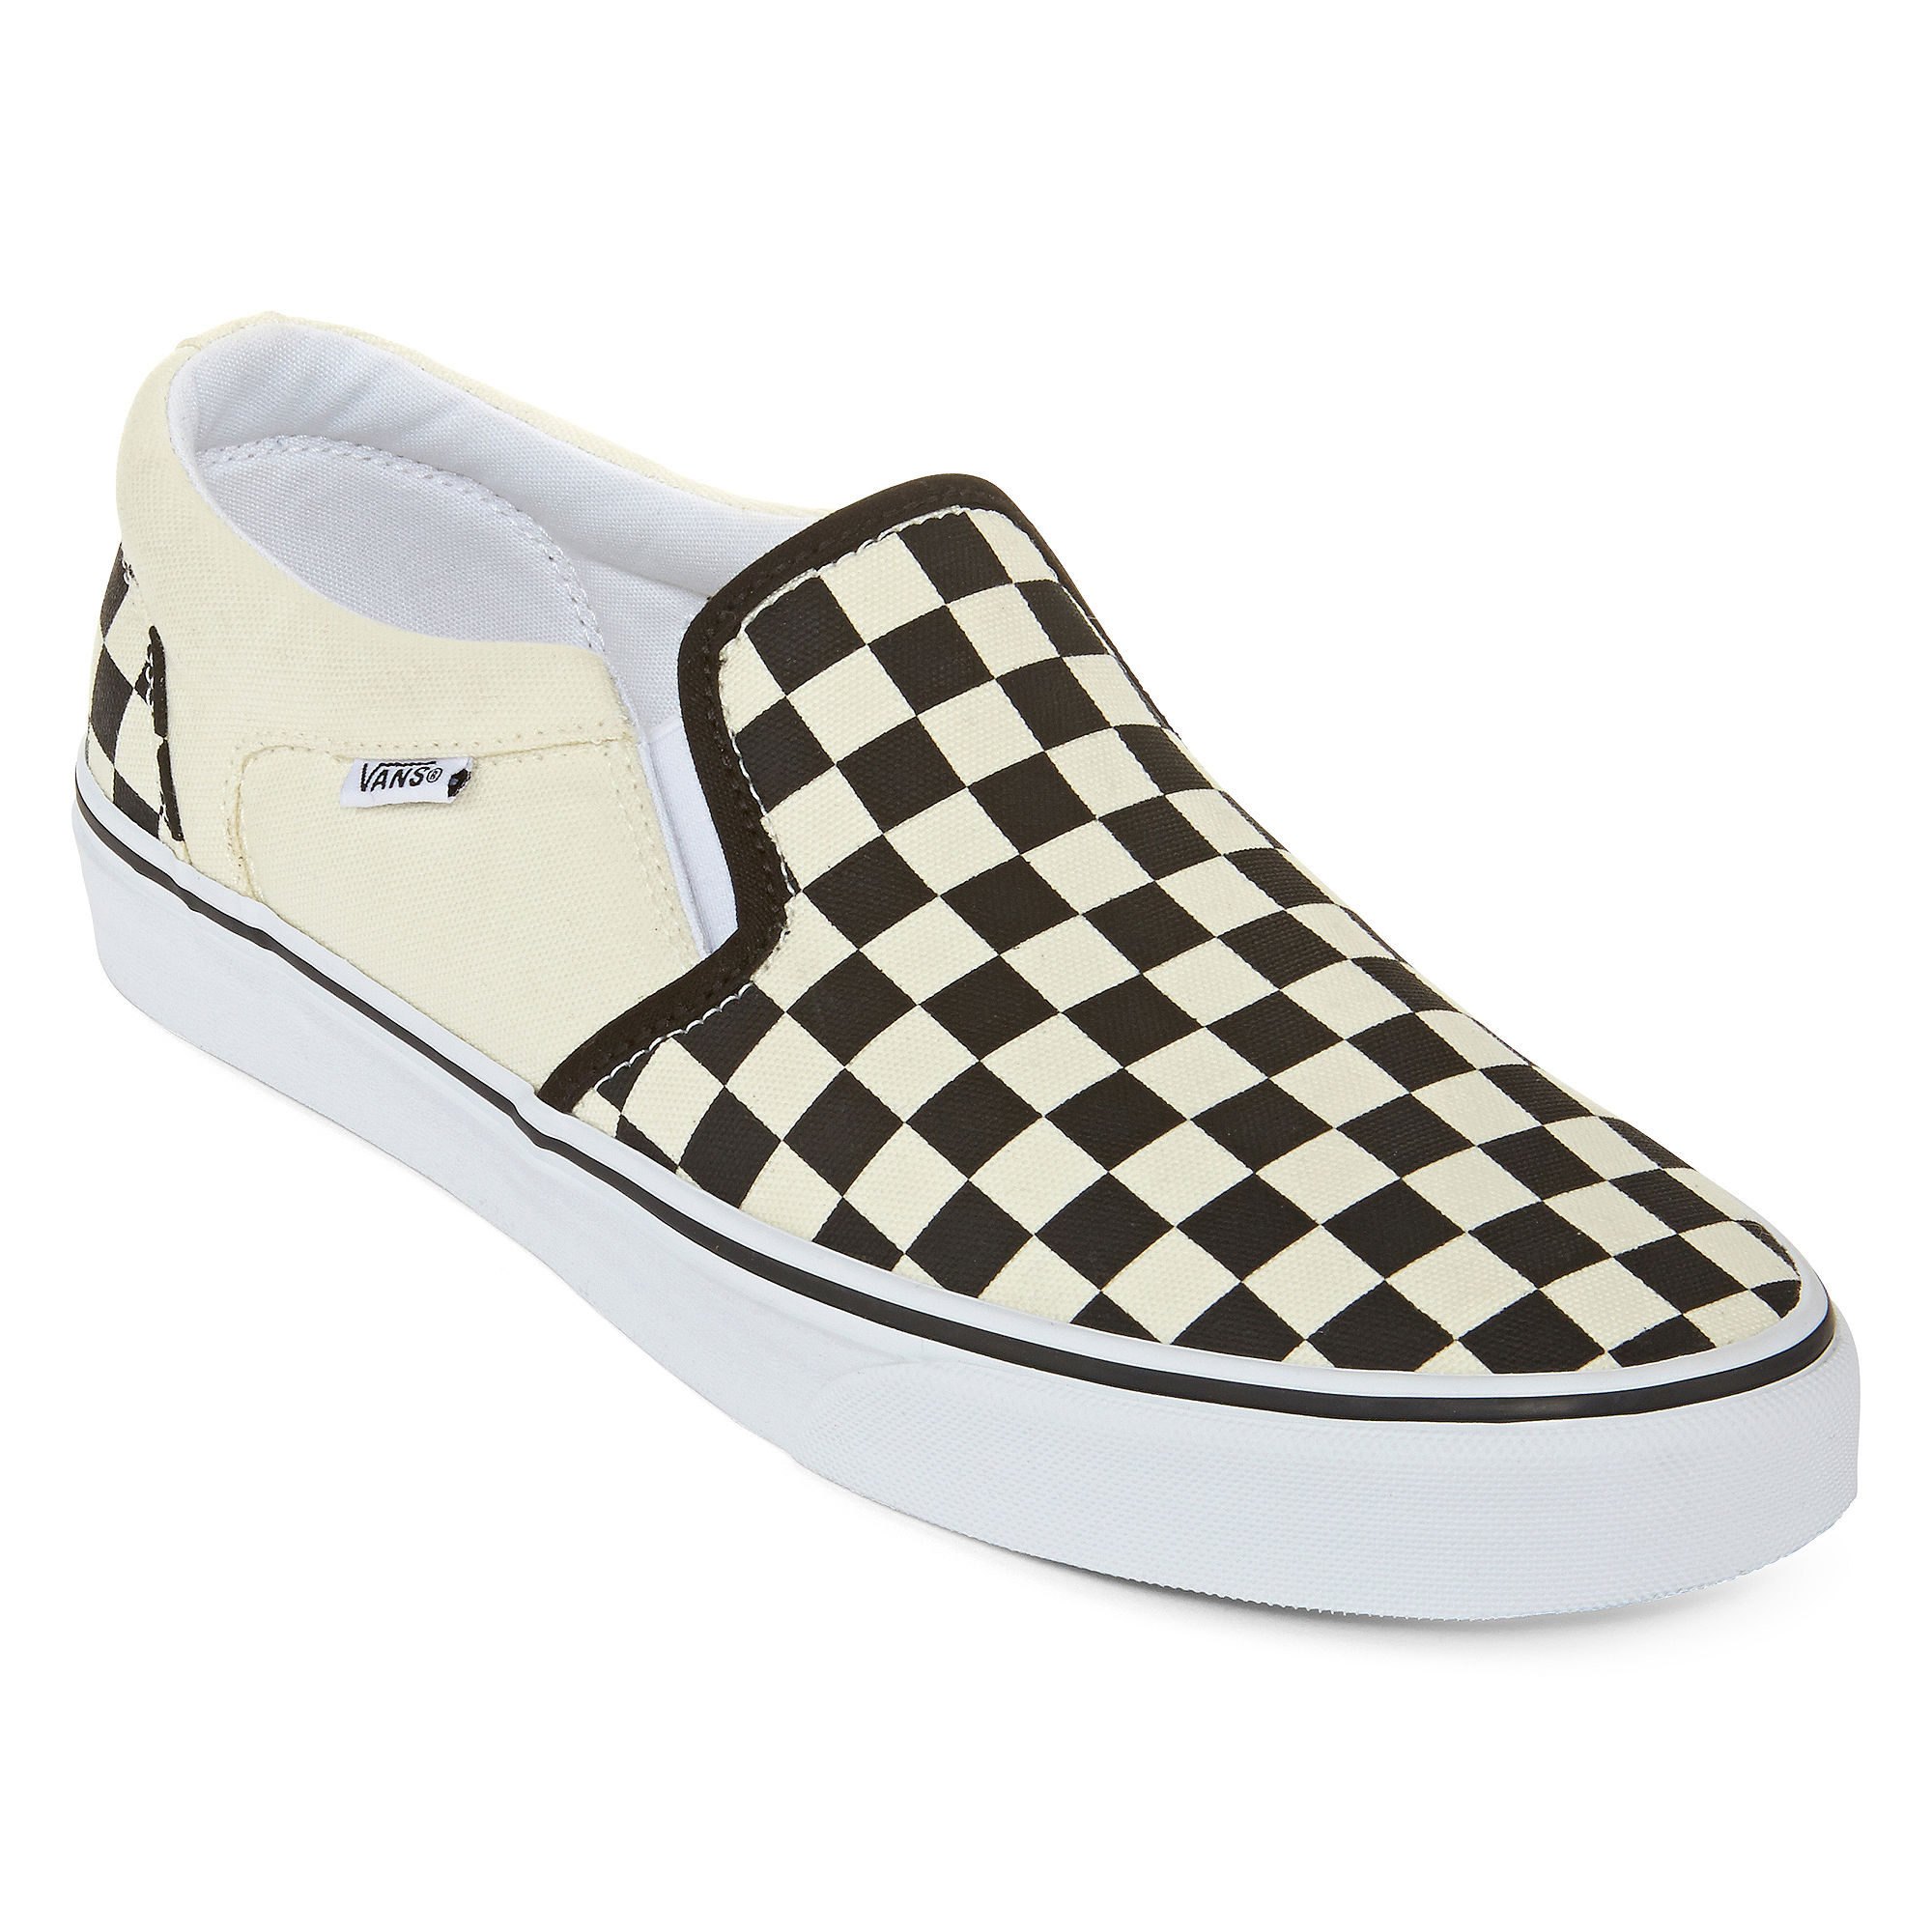 2cd1ac76d4 ... Slip On Sneakers, Tennies, Skateboard Shoes UPC 881862411131 product  image for Vans Asher Checkered Mens Athletic Skate Shoes | upcitemdb.com ...